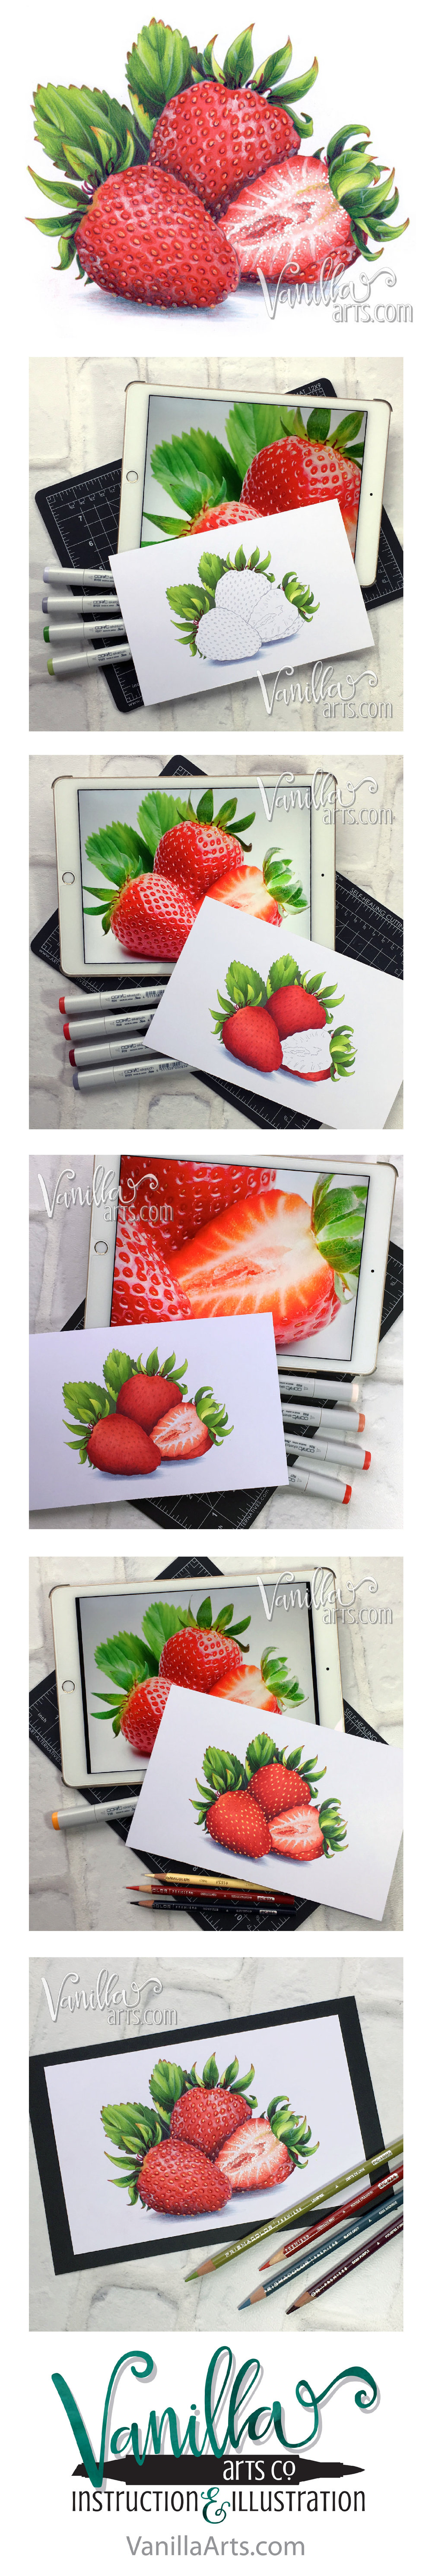 """Strawberries"" week 12 project for Marker Painting Foundations online Copic course for beginners. We start with simple blending and work our way towards realism! Begin the course anytime, work at your own pace. 